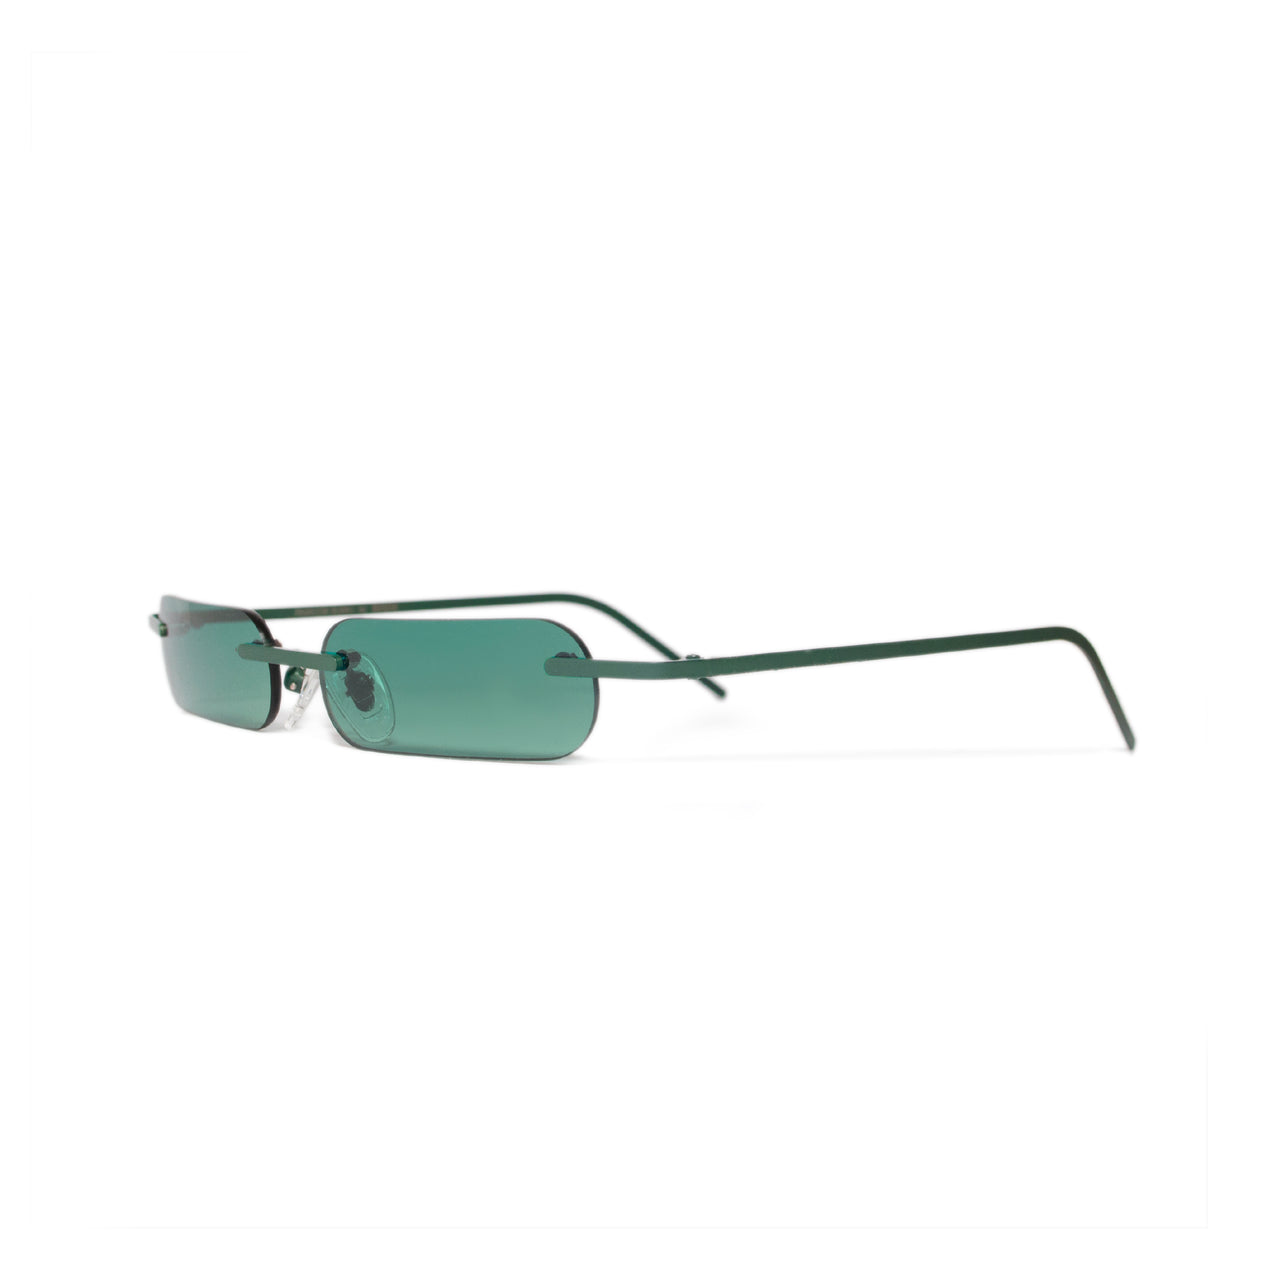 Metal. Gloss Black. Jade Lens. - BLYSZAK eyewear  - eyewear, optical, sunglasses